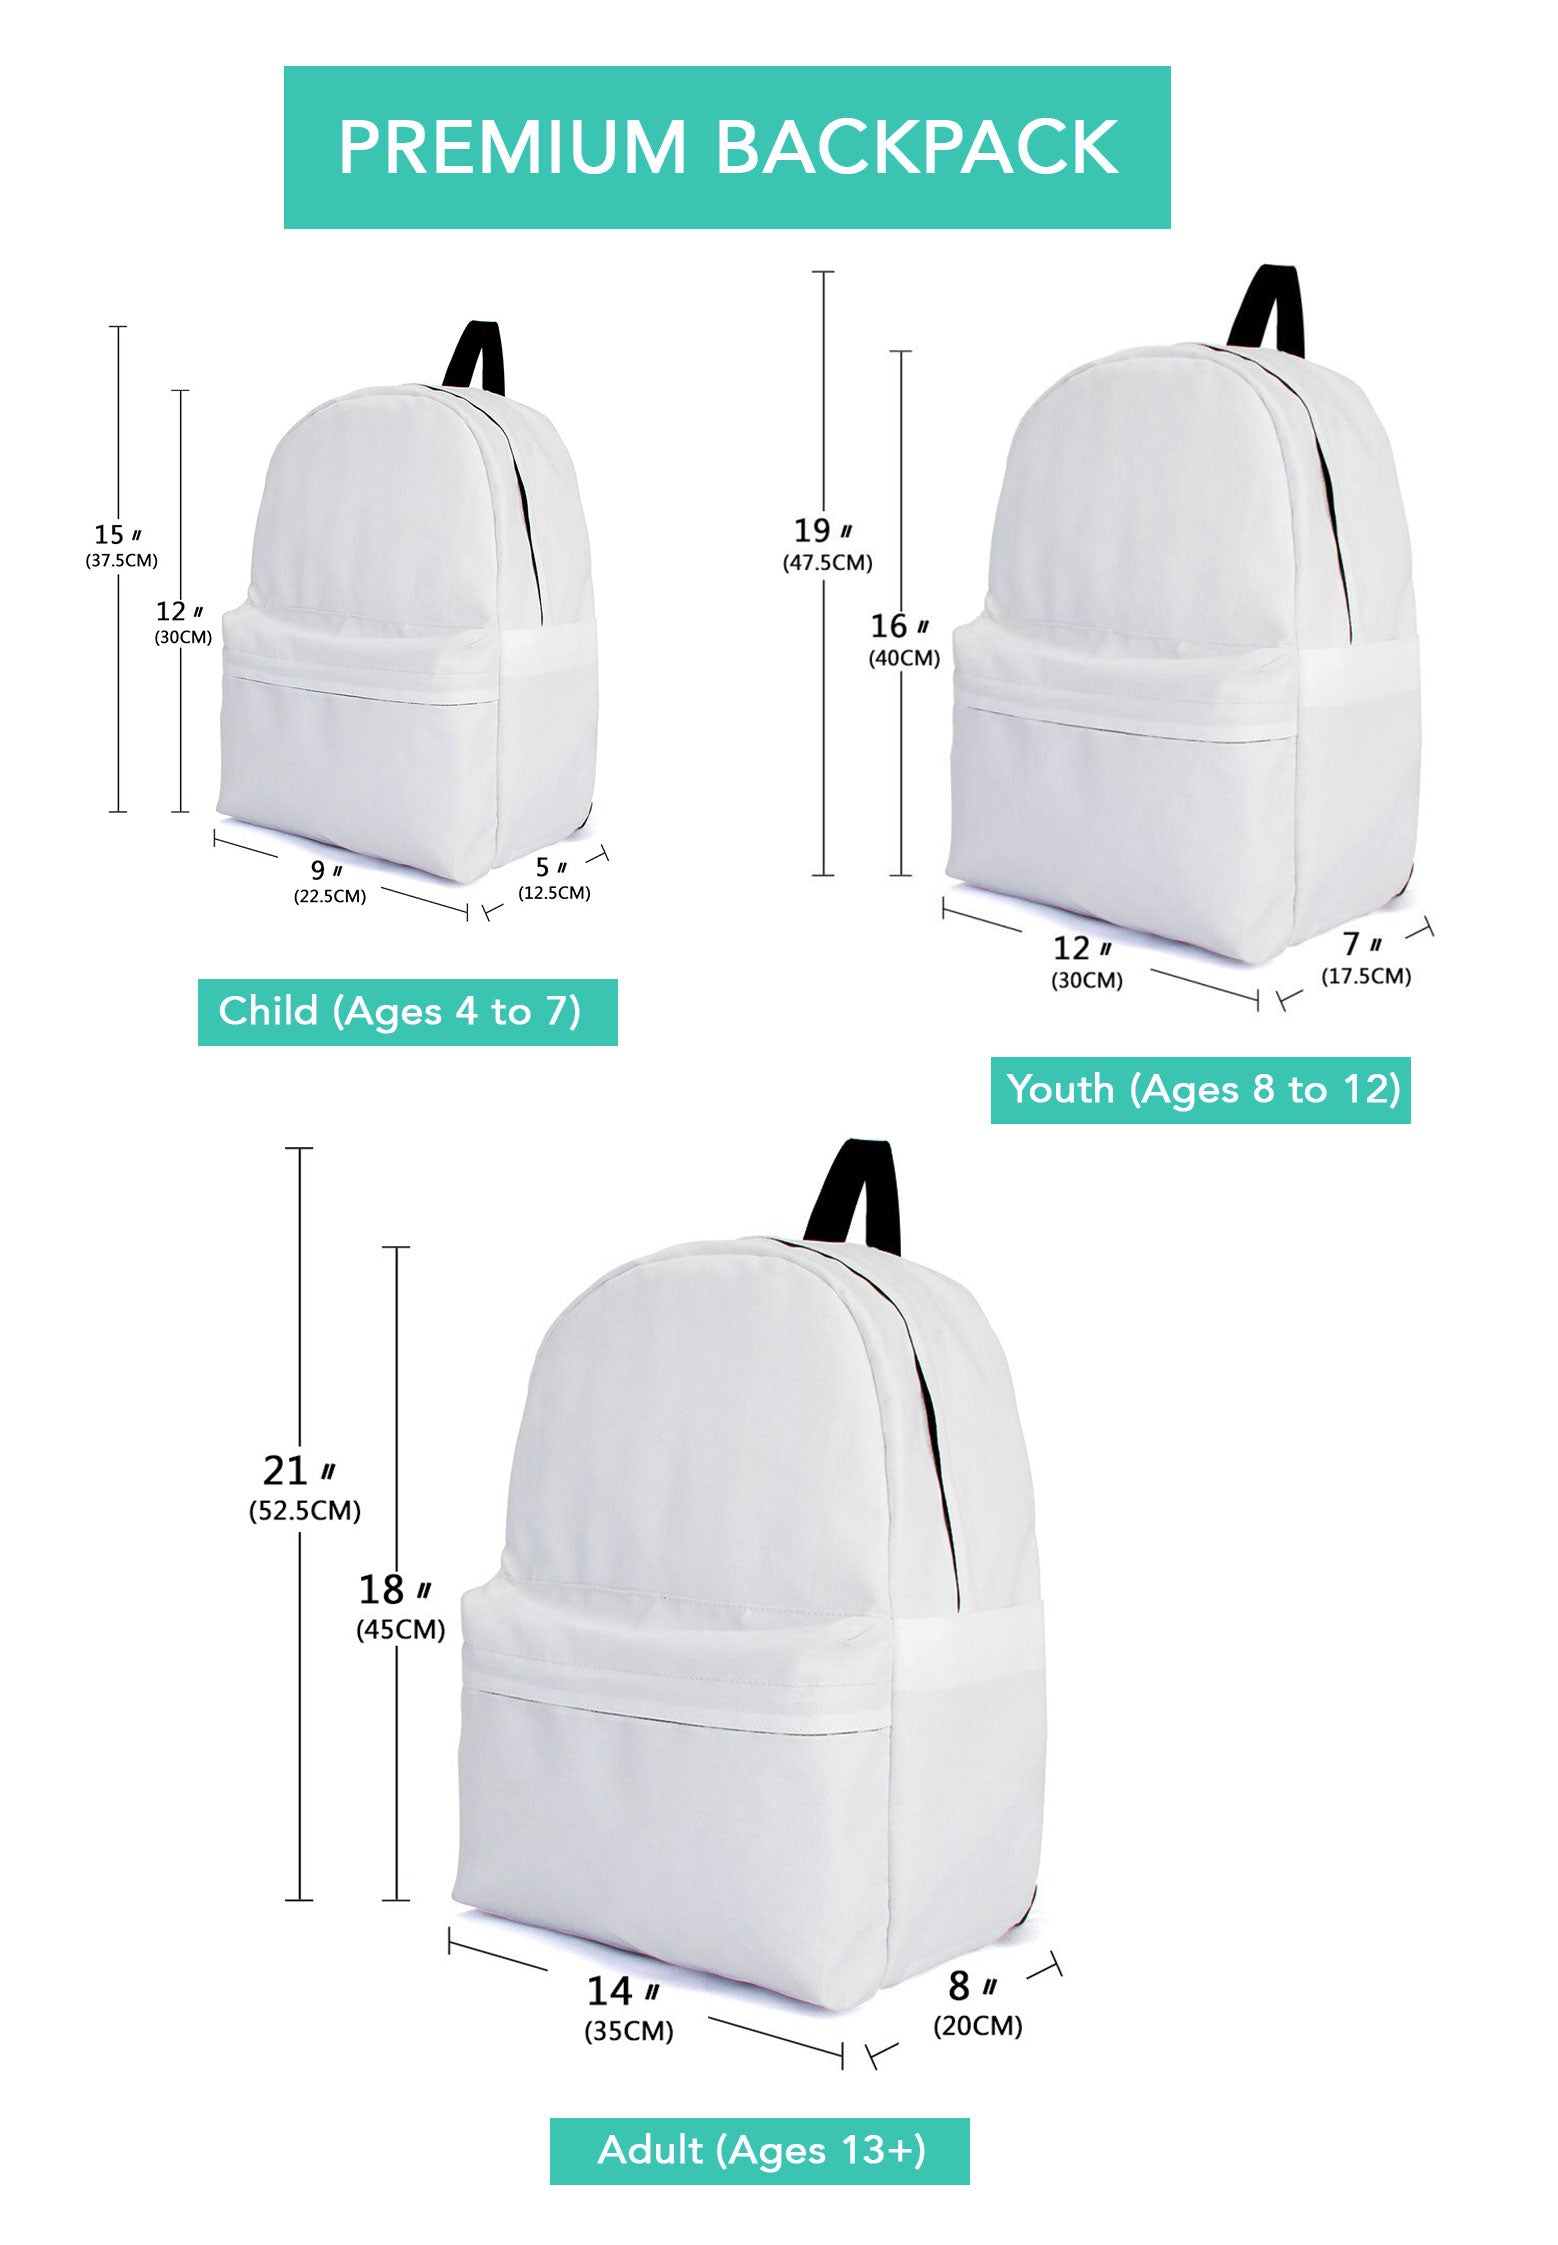 Easy Baby Travelers Backpack Sizing Chart